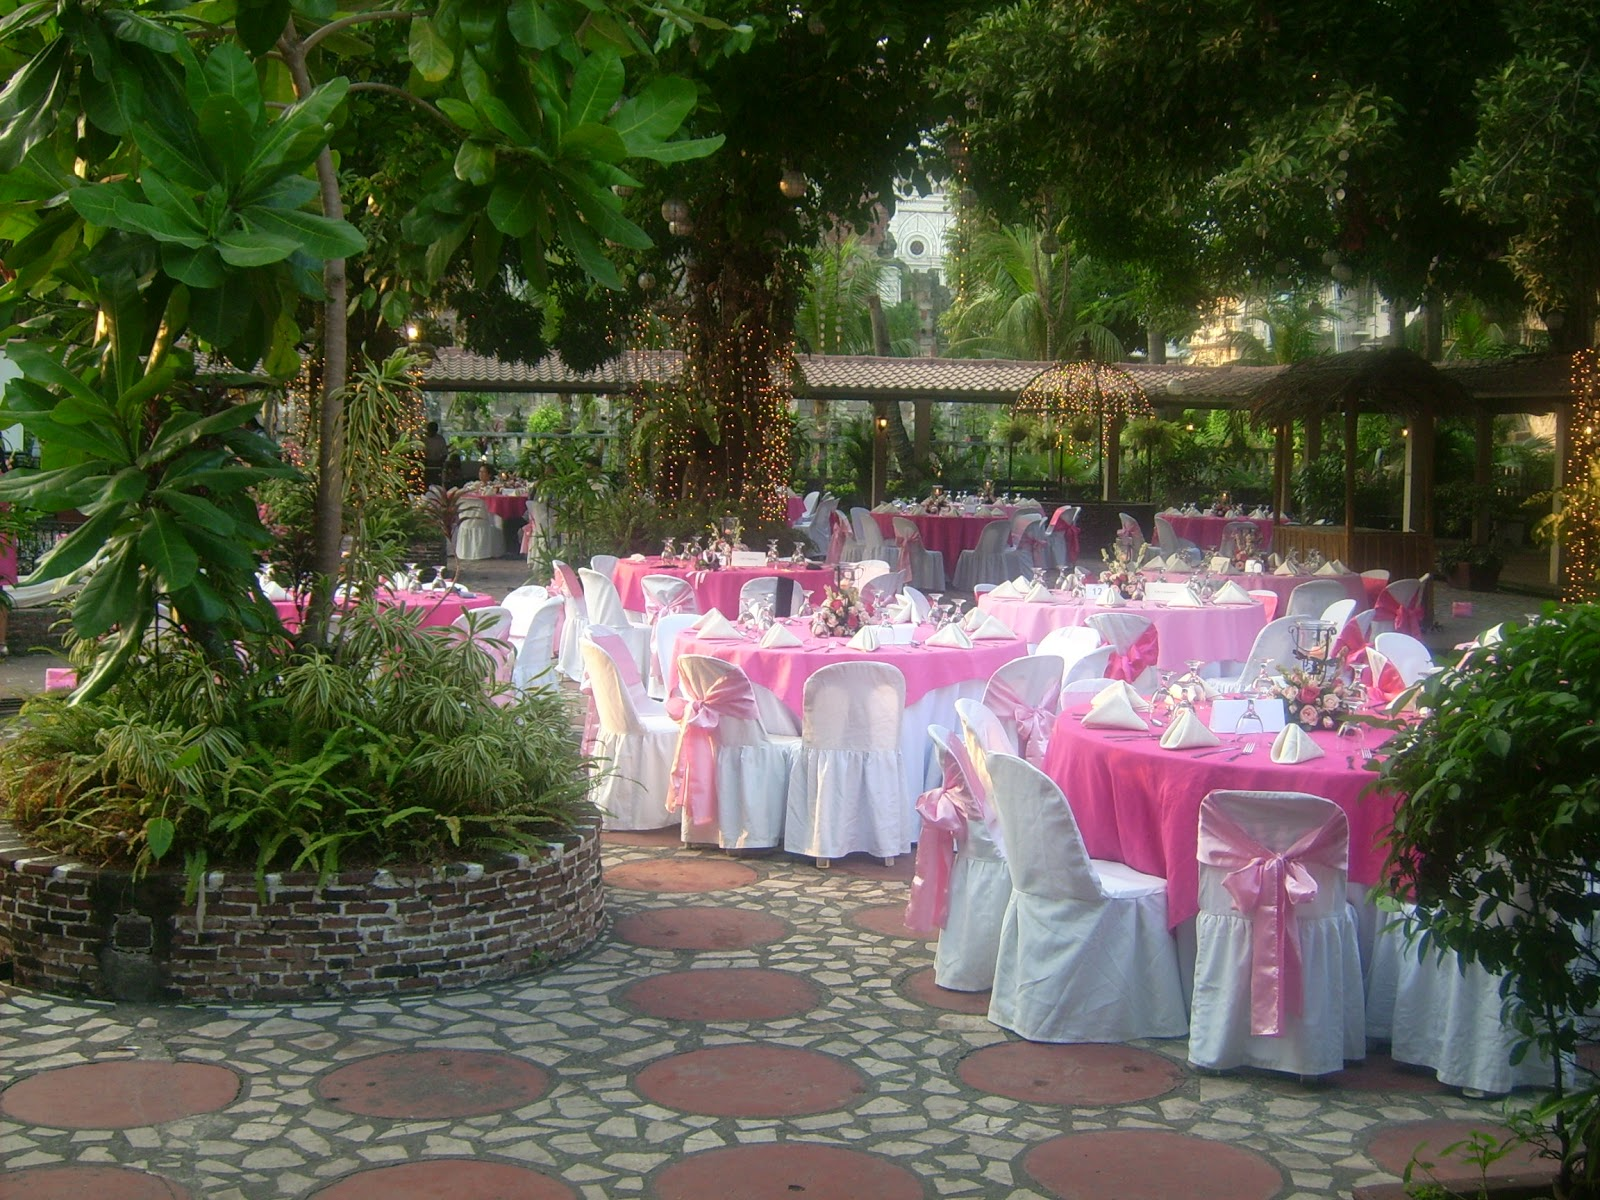 Lq designs ideas for wedding receptions on a budget for Pictures of wedding venues decorated